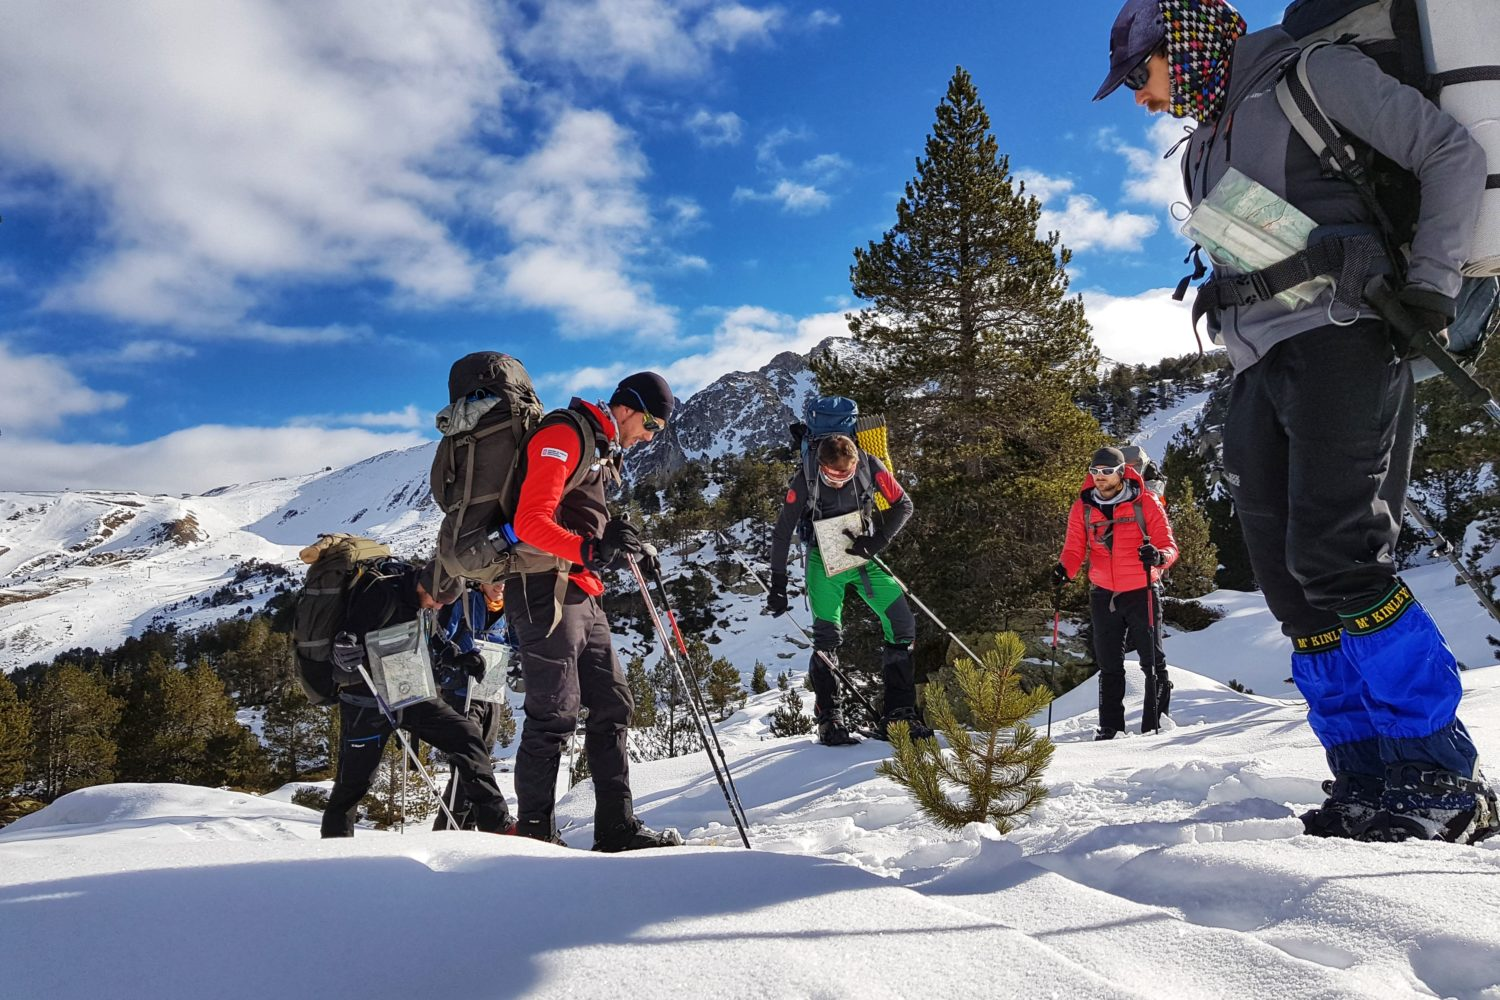 Exploring the snow layers on our small group snowshoeing tour in the Pyrenees